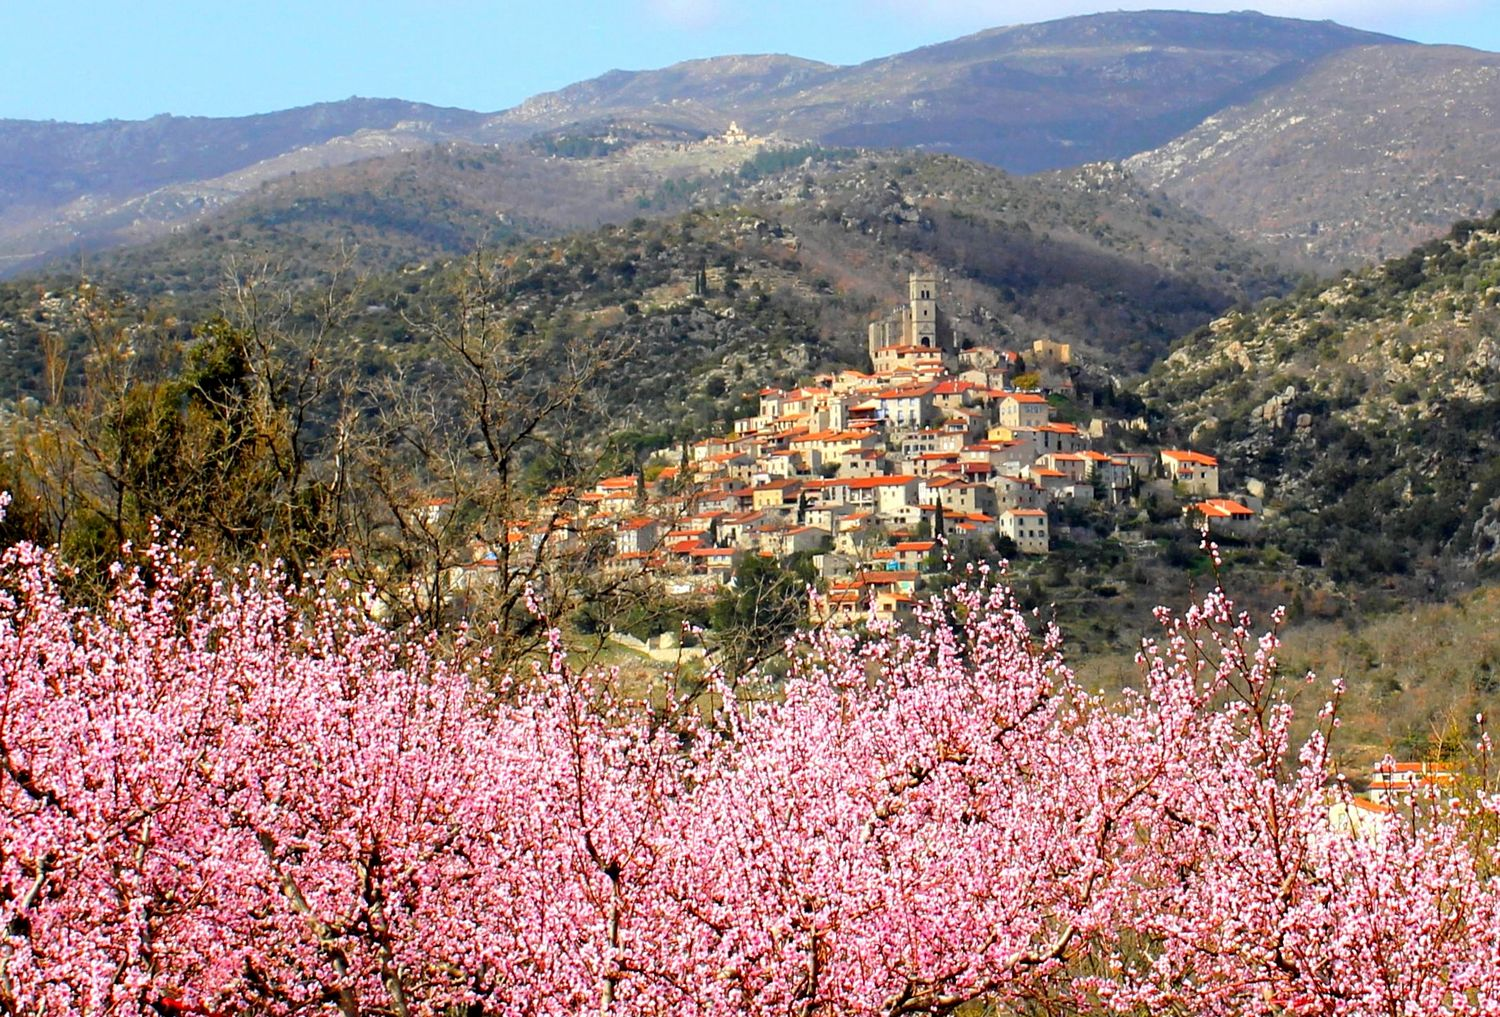 Eus, un des plus beaux villages en Pays Catalan - Occitanie Catalunya